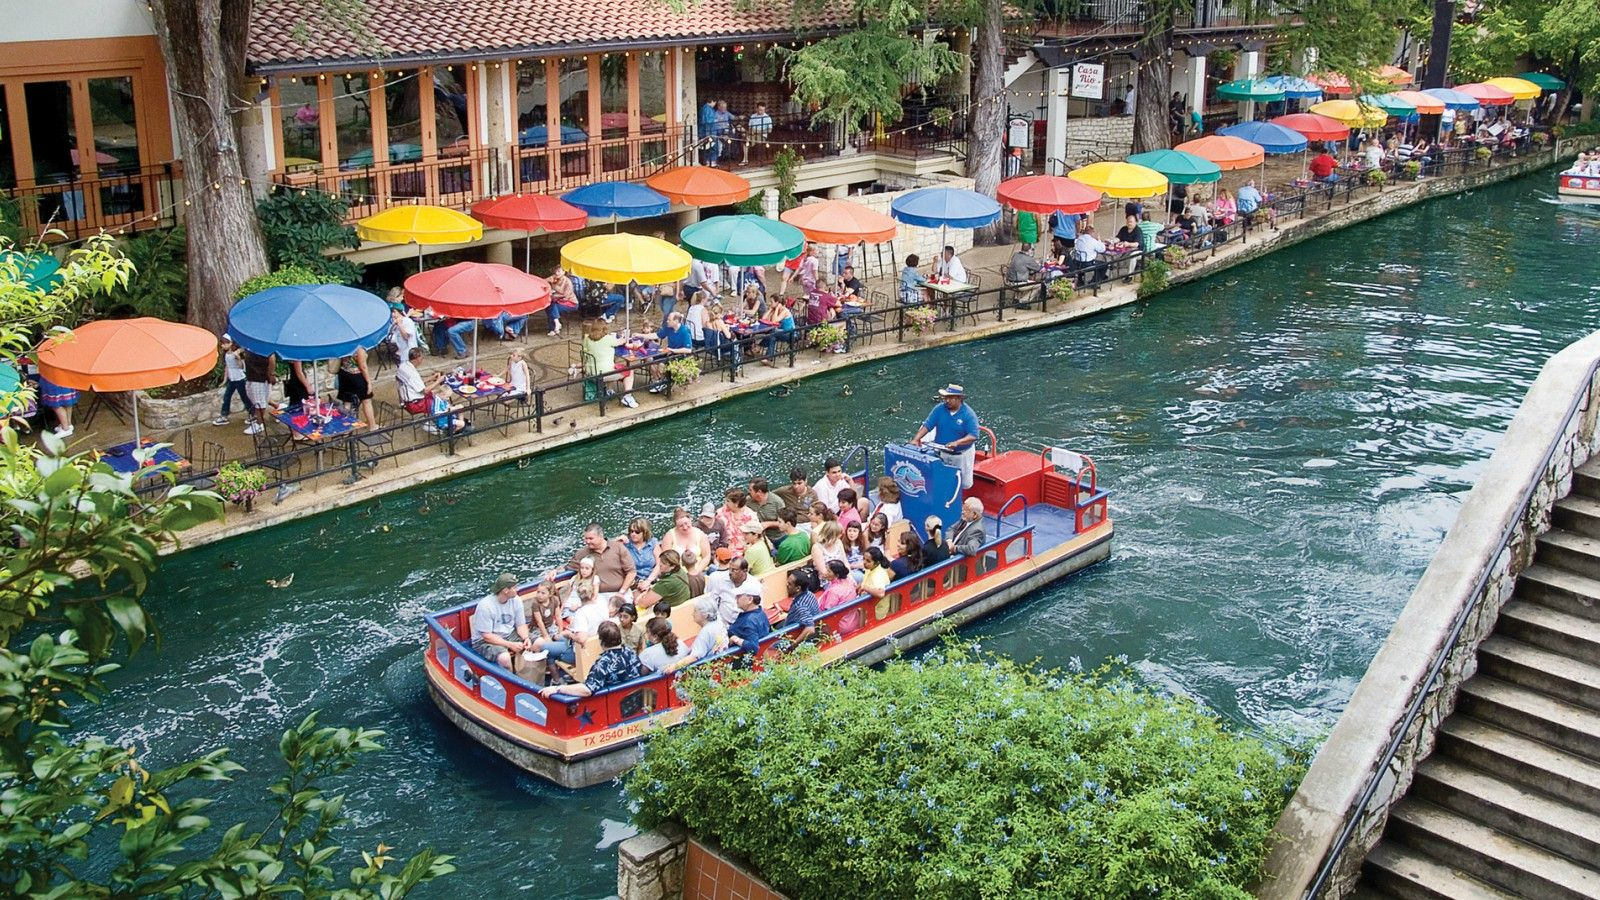 The Westin Riverwalk, San Antonio - San Antonio Riverwalk